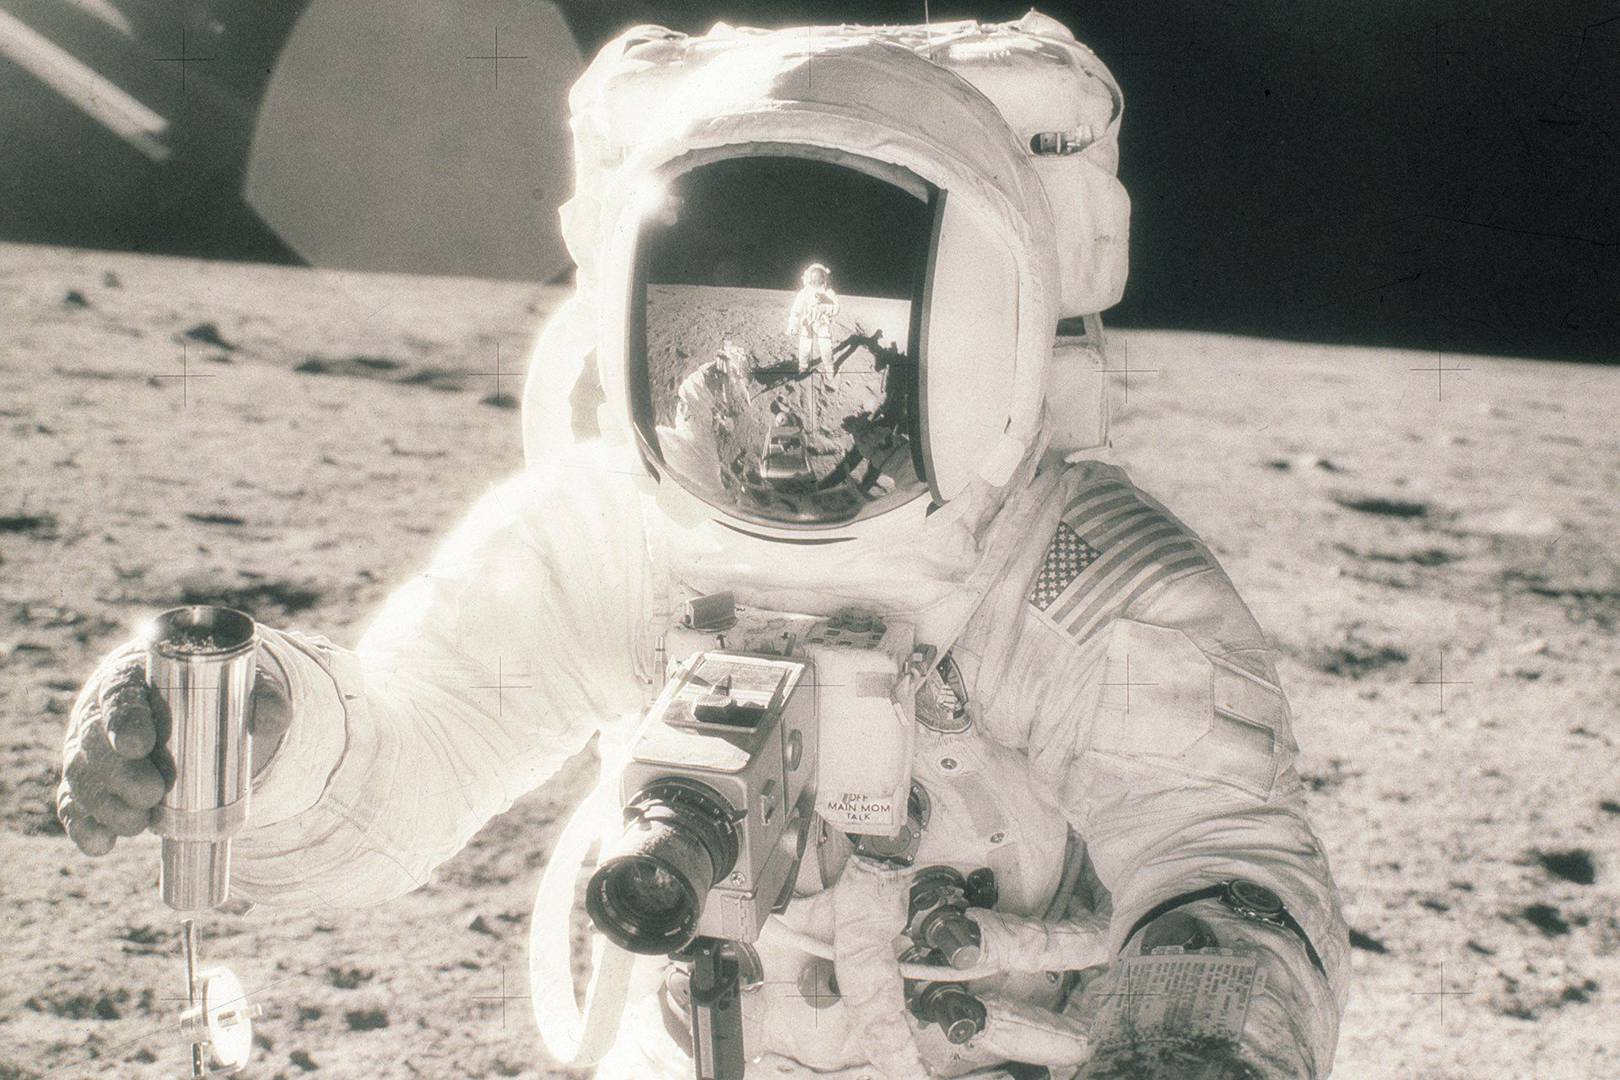 The Moon Landing Is Not A Conspiracy Theory And This Equation Explains Why